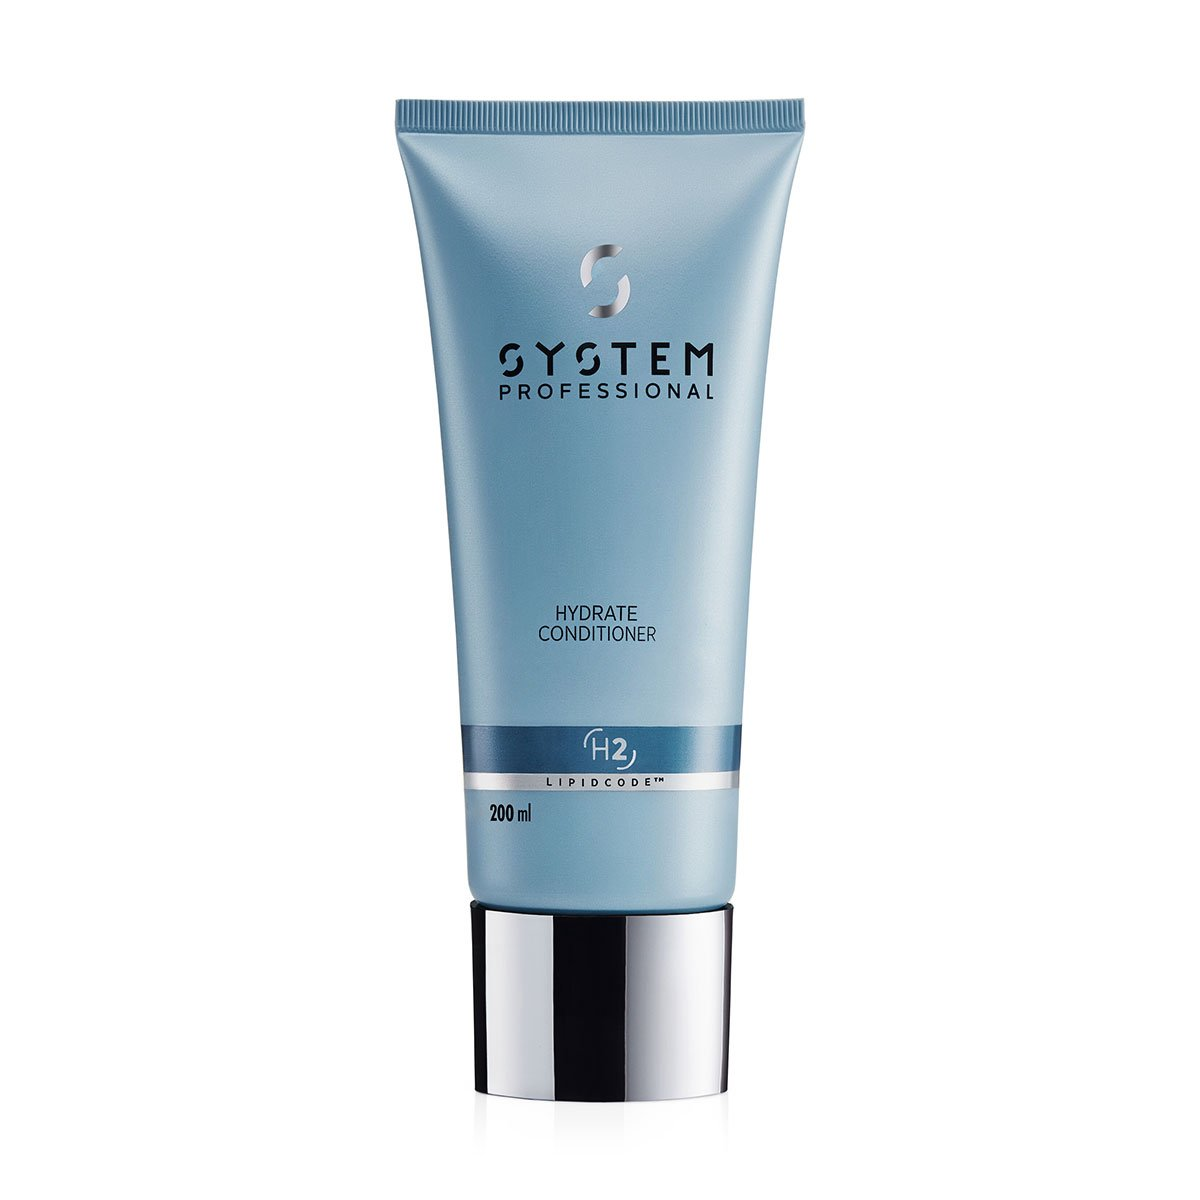 System Professional Hydrate Conditioner